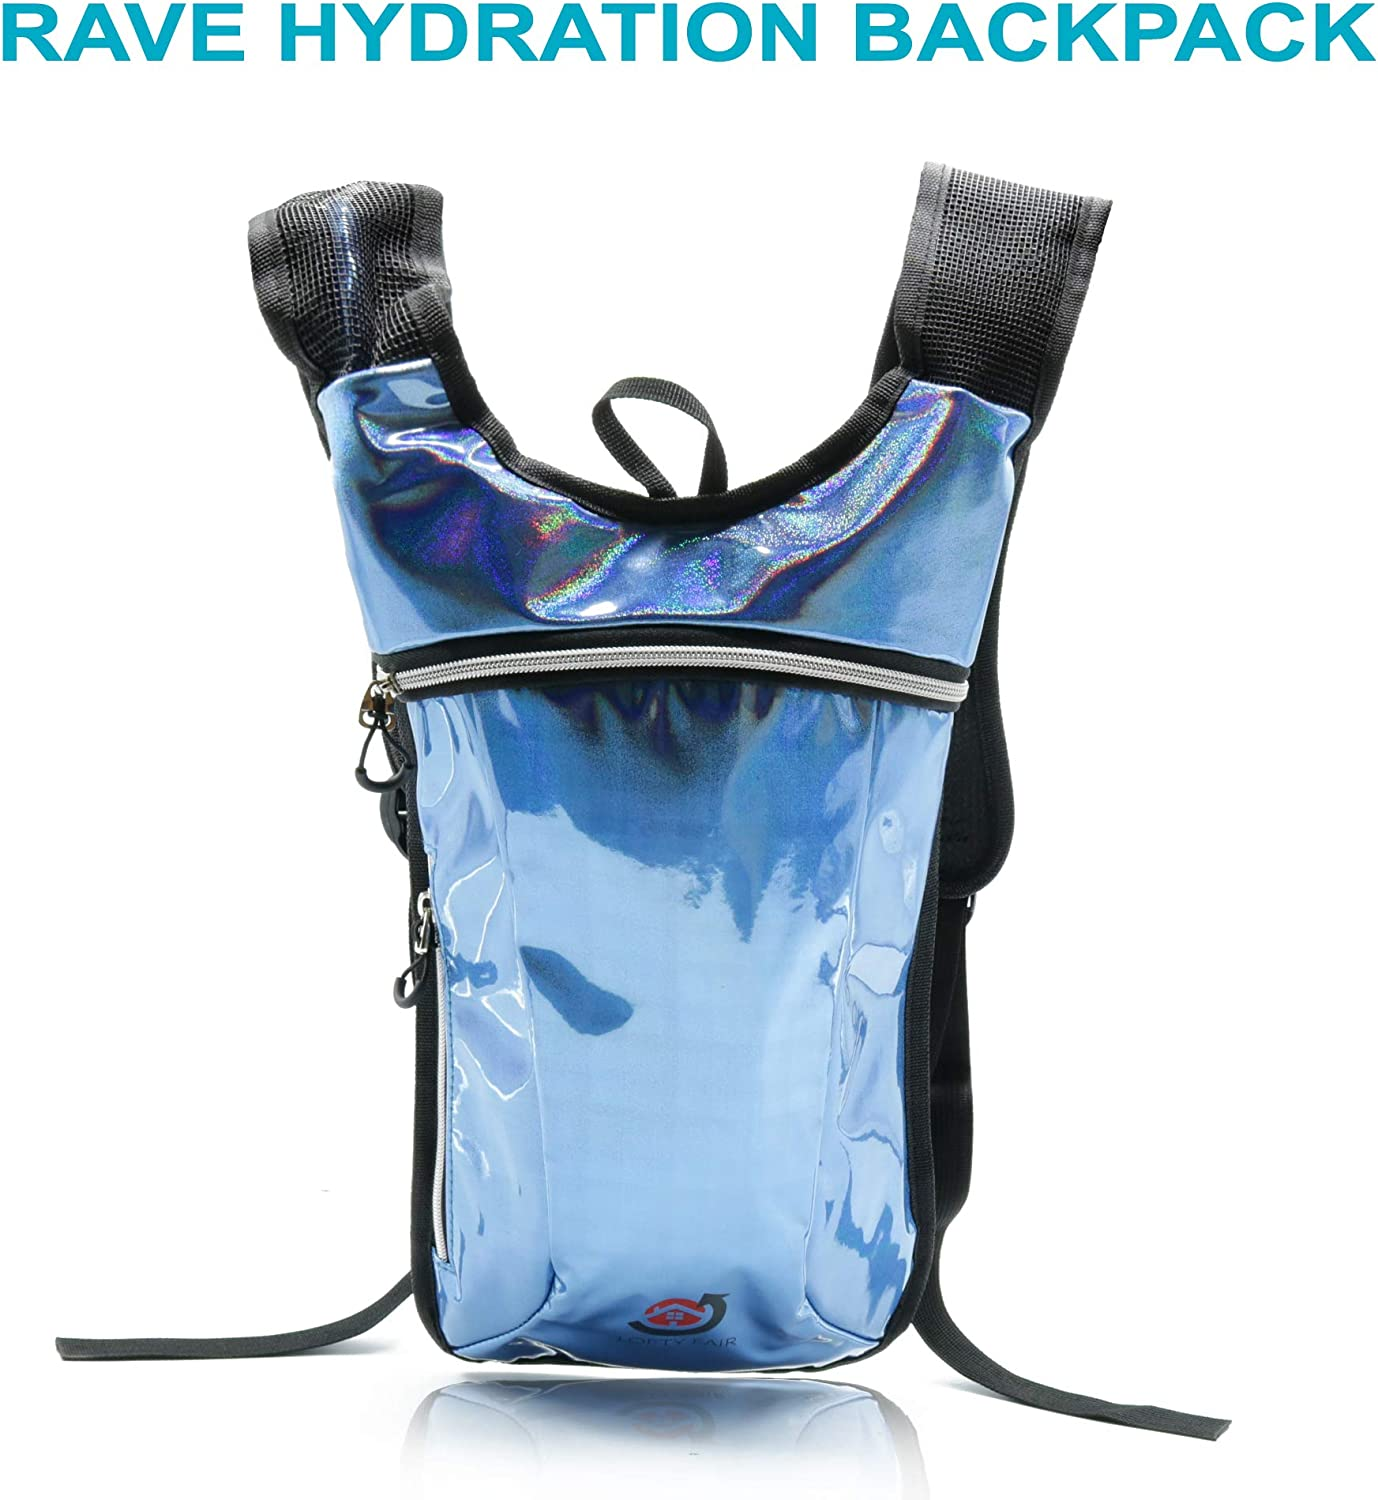 Lofty Fair Glitter bluee Rave Hydration Pack Backpack2L Water Bladder for Men & WomenIncluded for Festivals Raves Hiking Biking Climbing Running and More (Small)